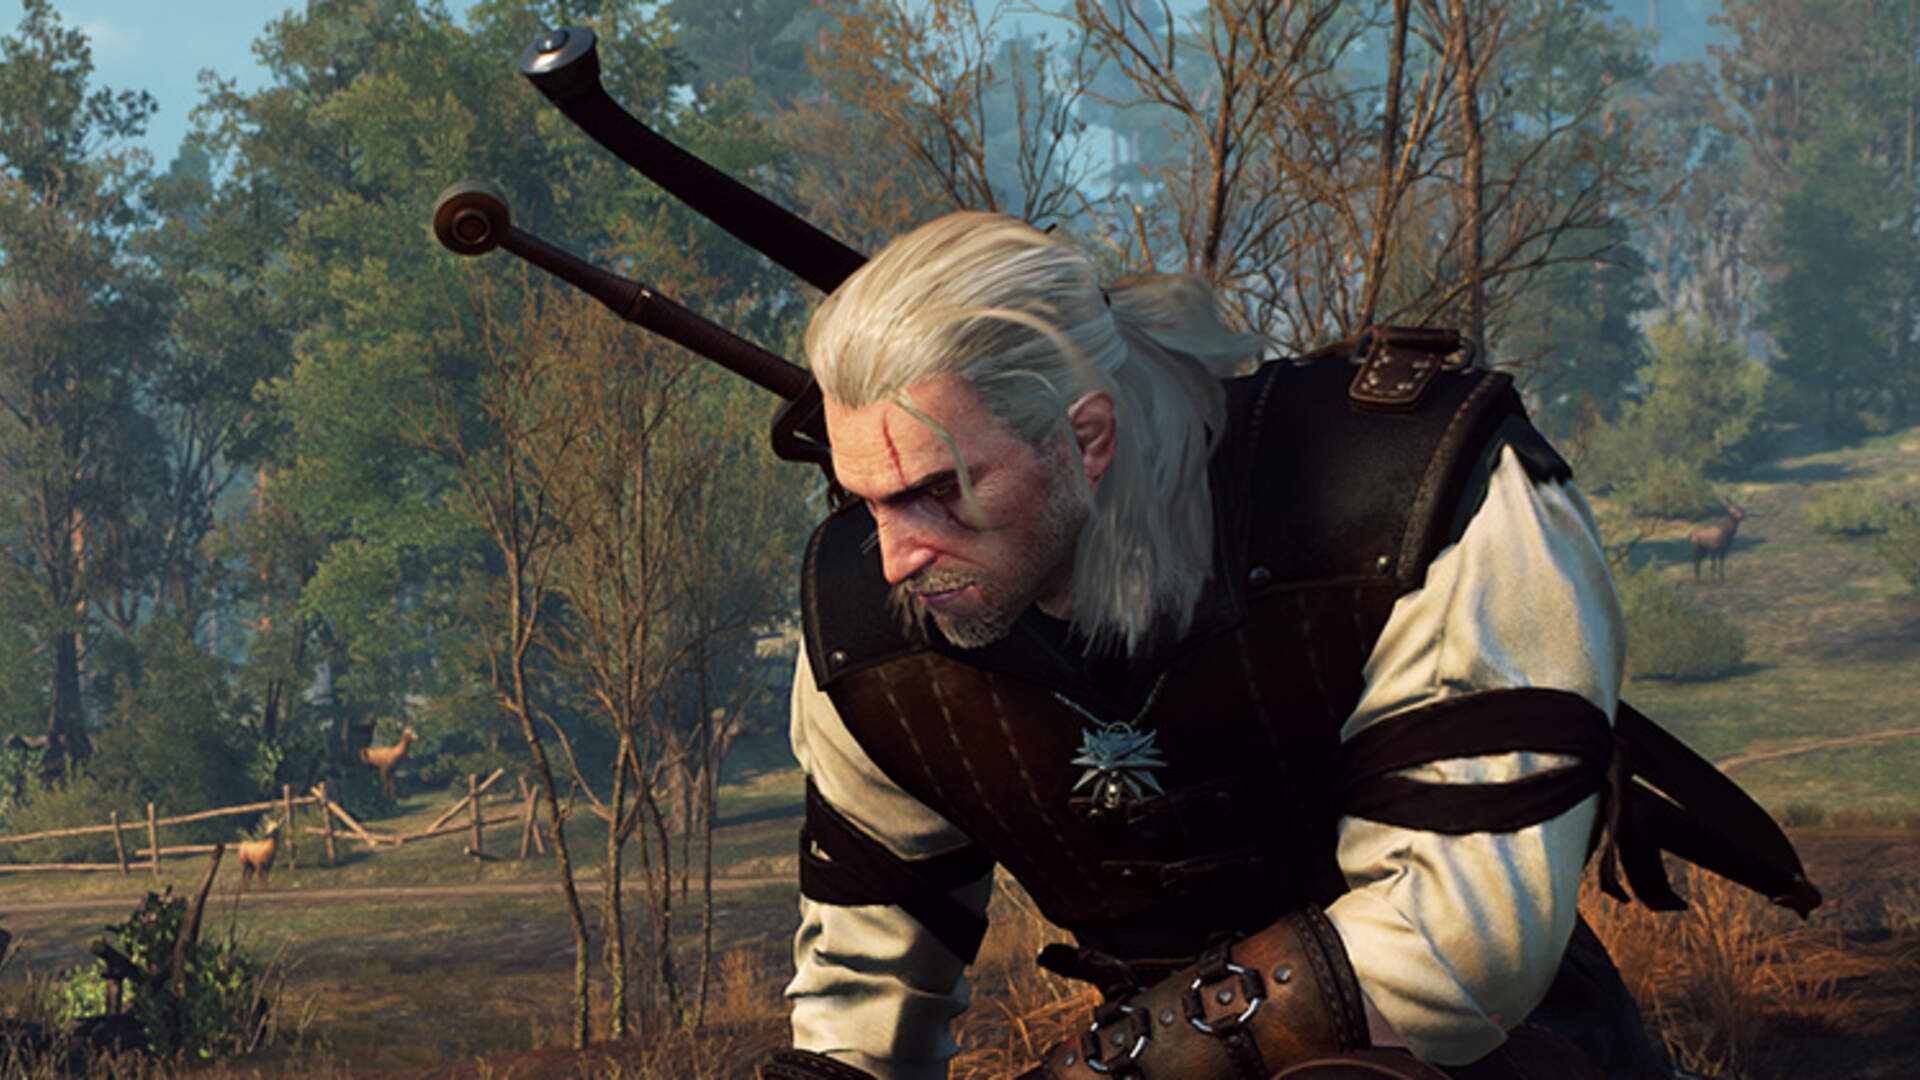 Tuesday Stream: Hunting Prey in The Witcher 3